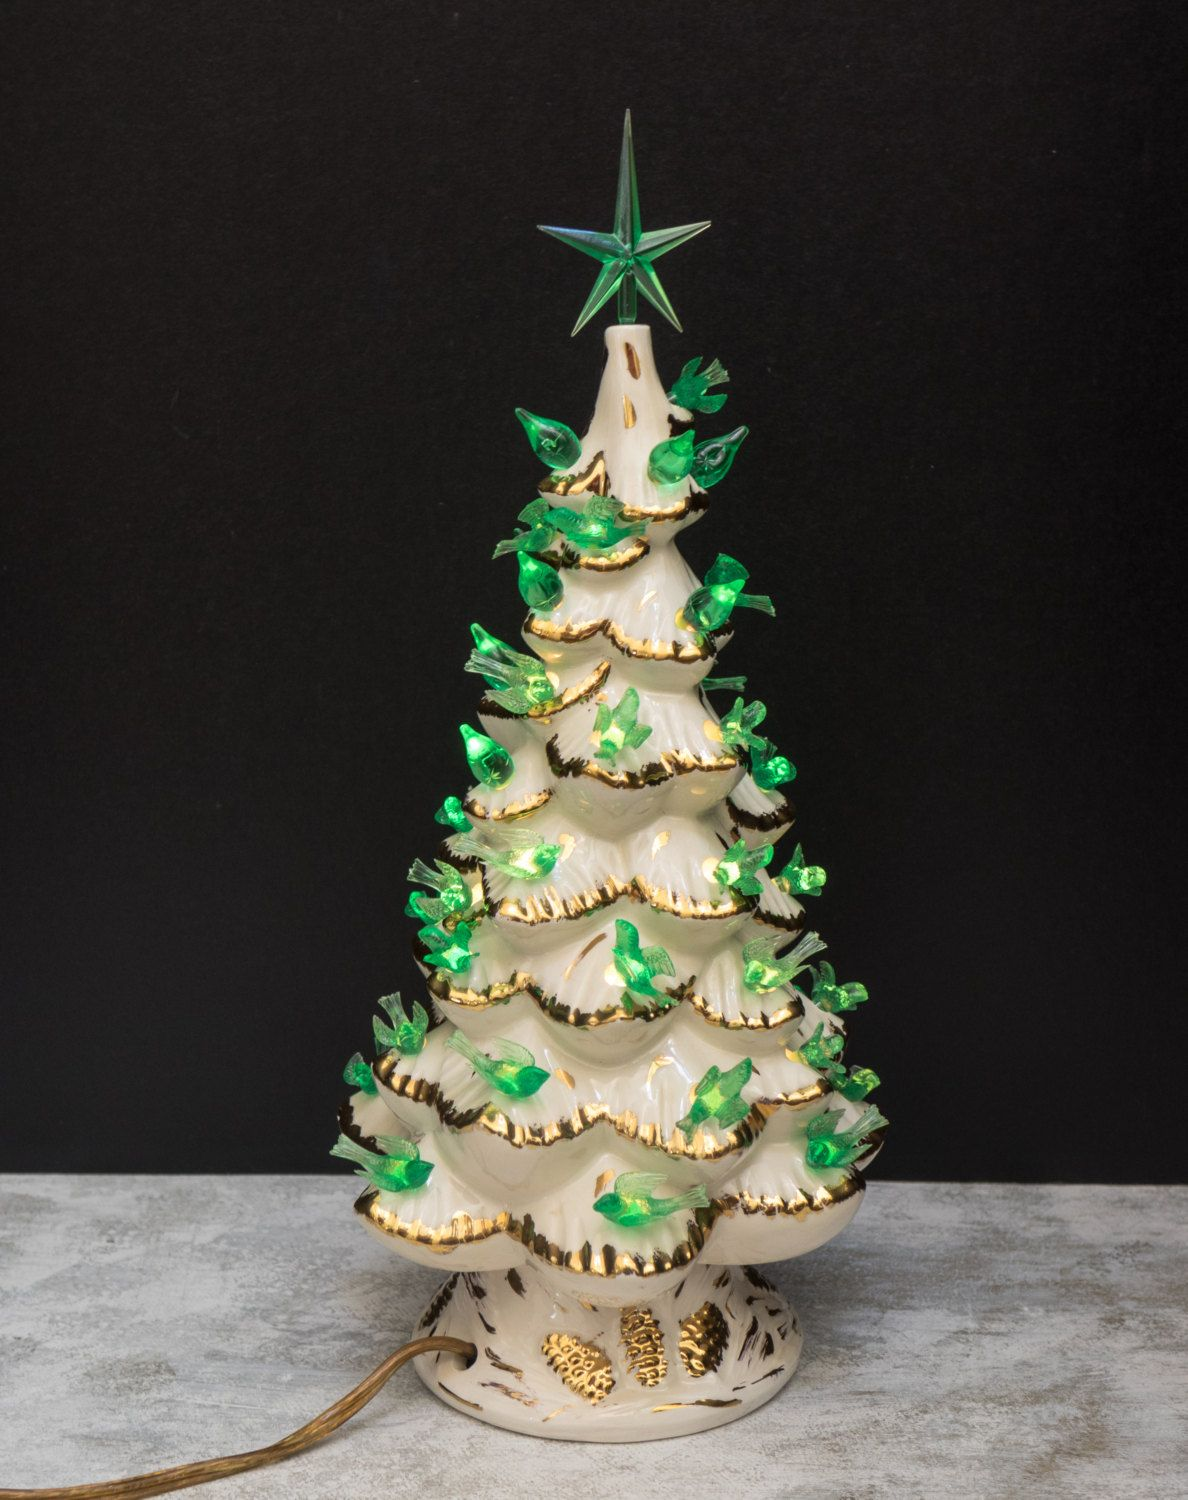 Christmas Tree Lighted White And Gold Ceramic Bird Bulbs 12 Inch Tabletop Lamp Signed 1978 Arnel S Mold 1973 C Christmas Tree Decorations Tree Decorations